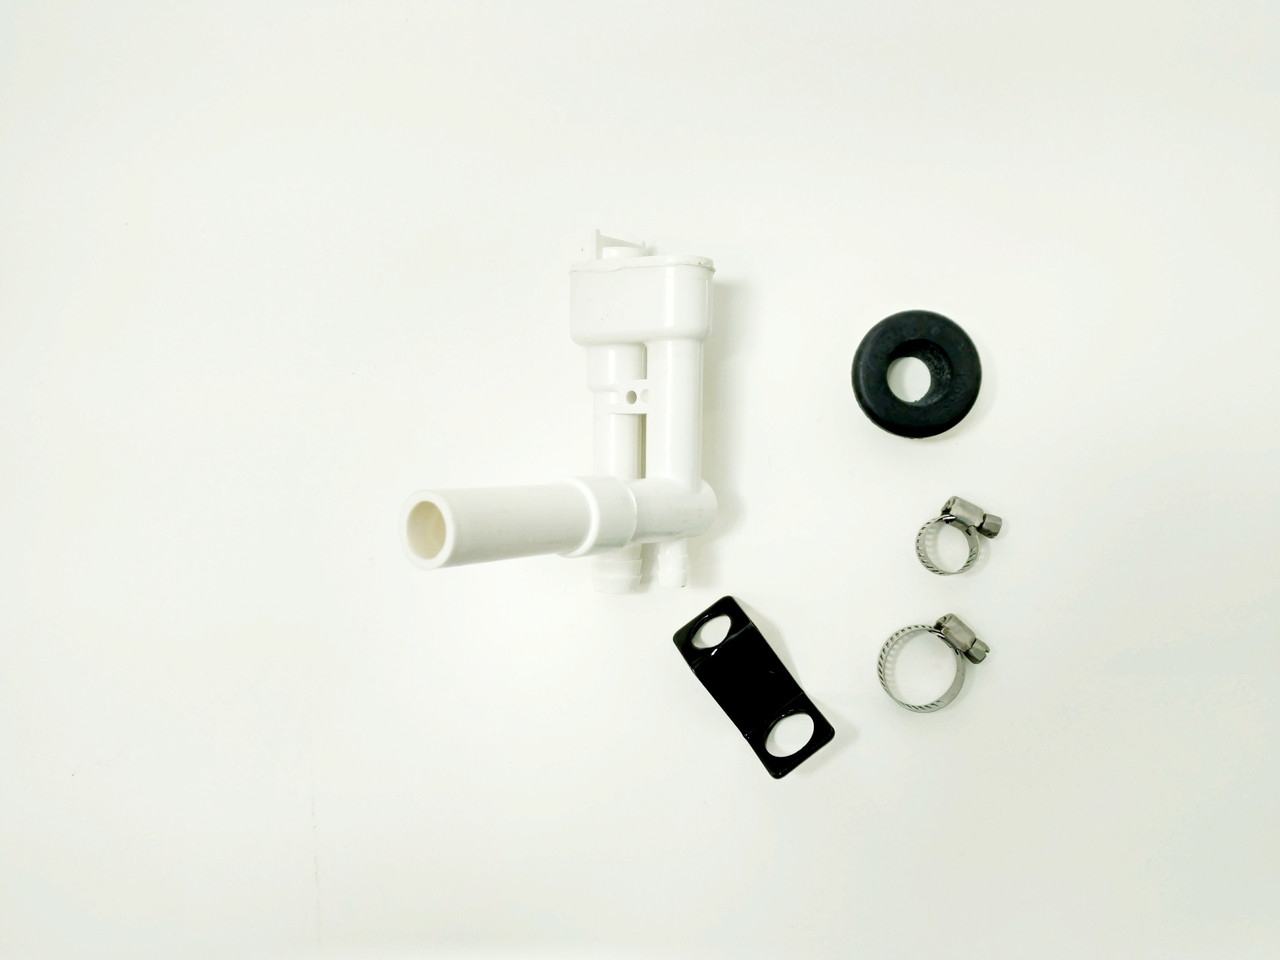 KIT, VACUUM BREAKER WITH EXT. FOR USE WITH HAND SPRAY  230325 ( OLD 510 & 511 )